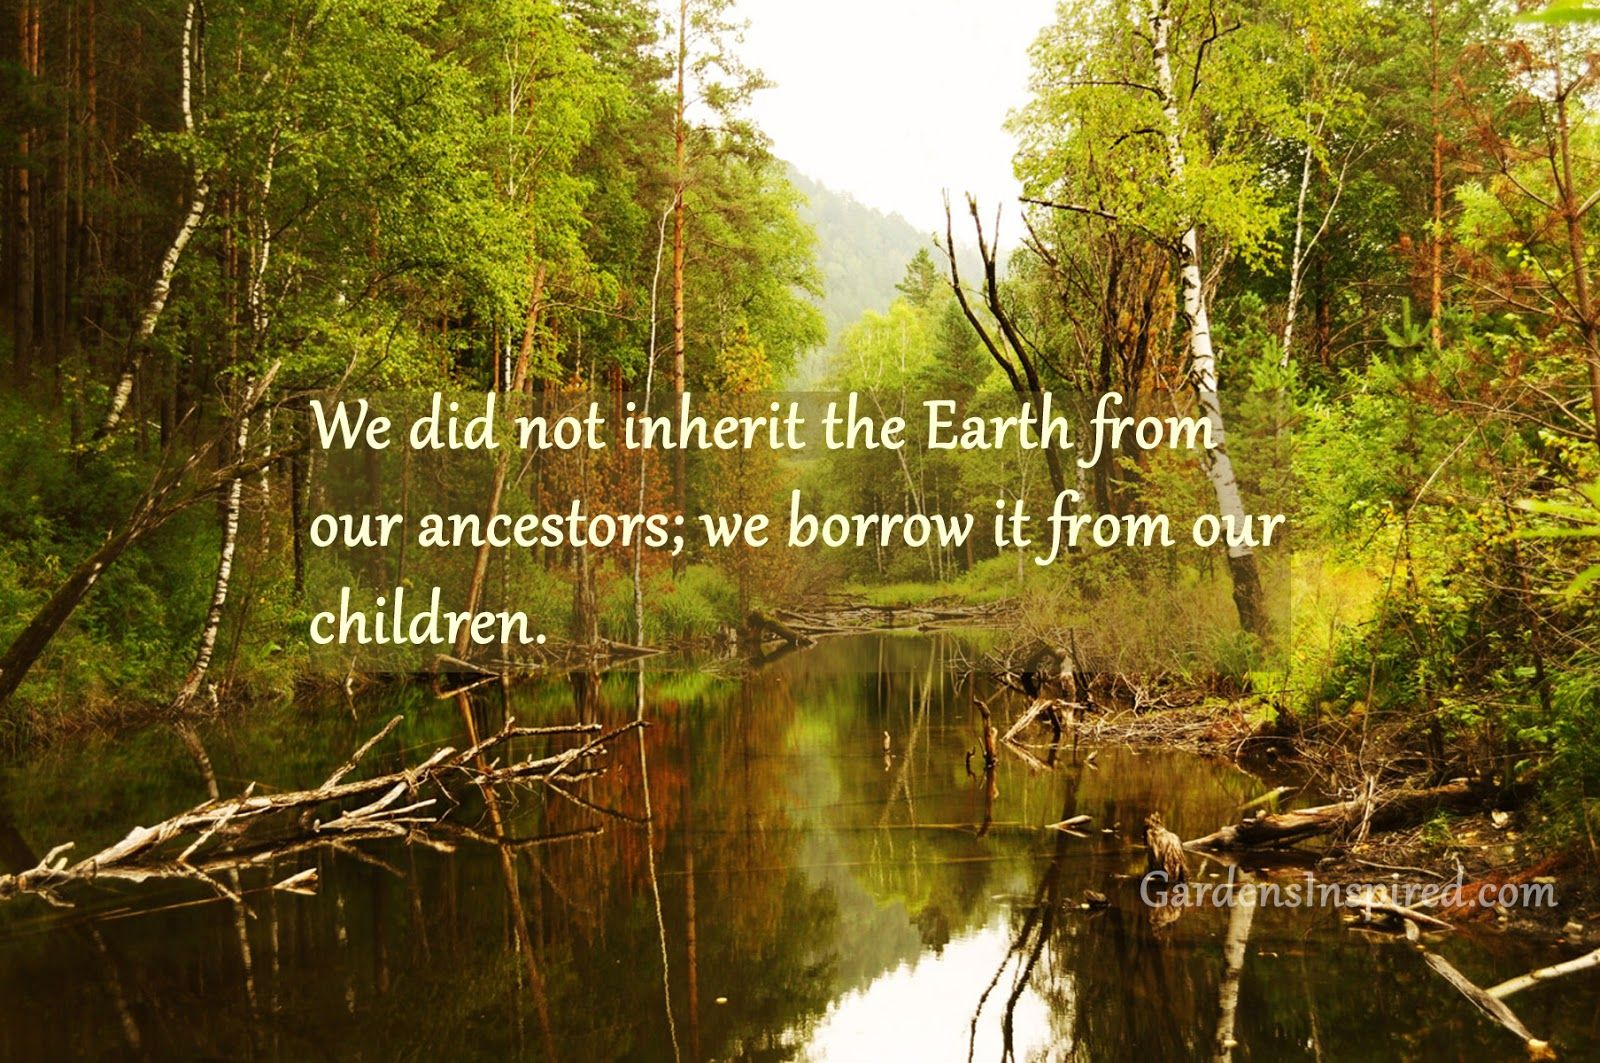 We did not inherit the Earth from our ancestors; we borrow it from ...